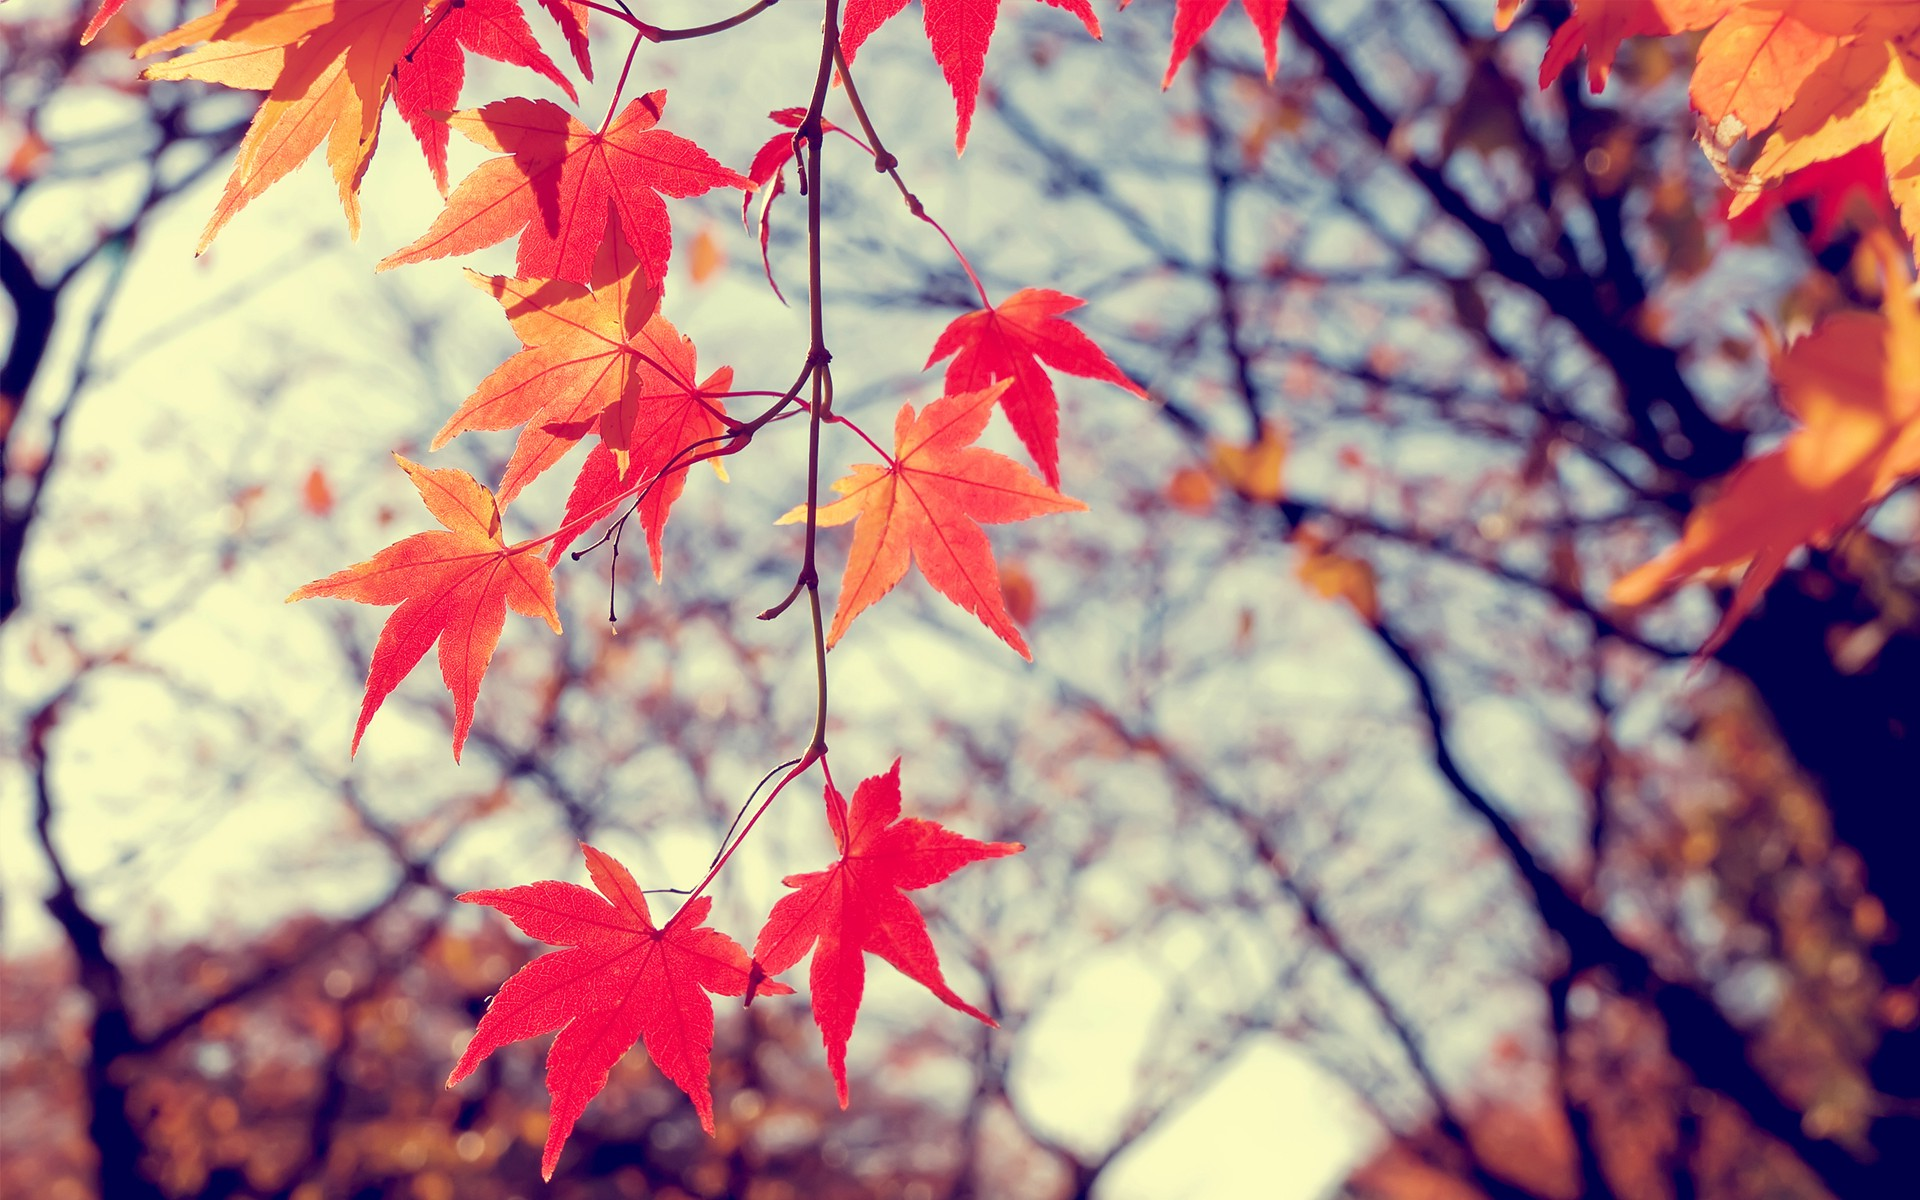 Fall Leaf Wallpaper For Mobile Landscape Winter Leaves Plants Nature Wallpapers Hd